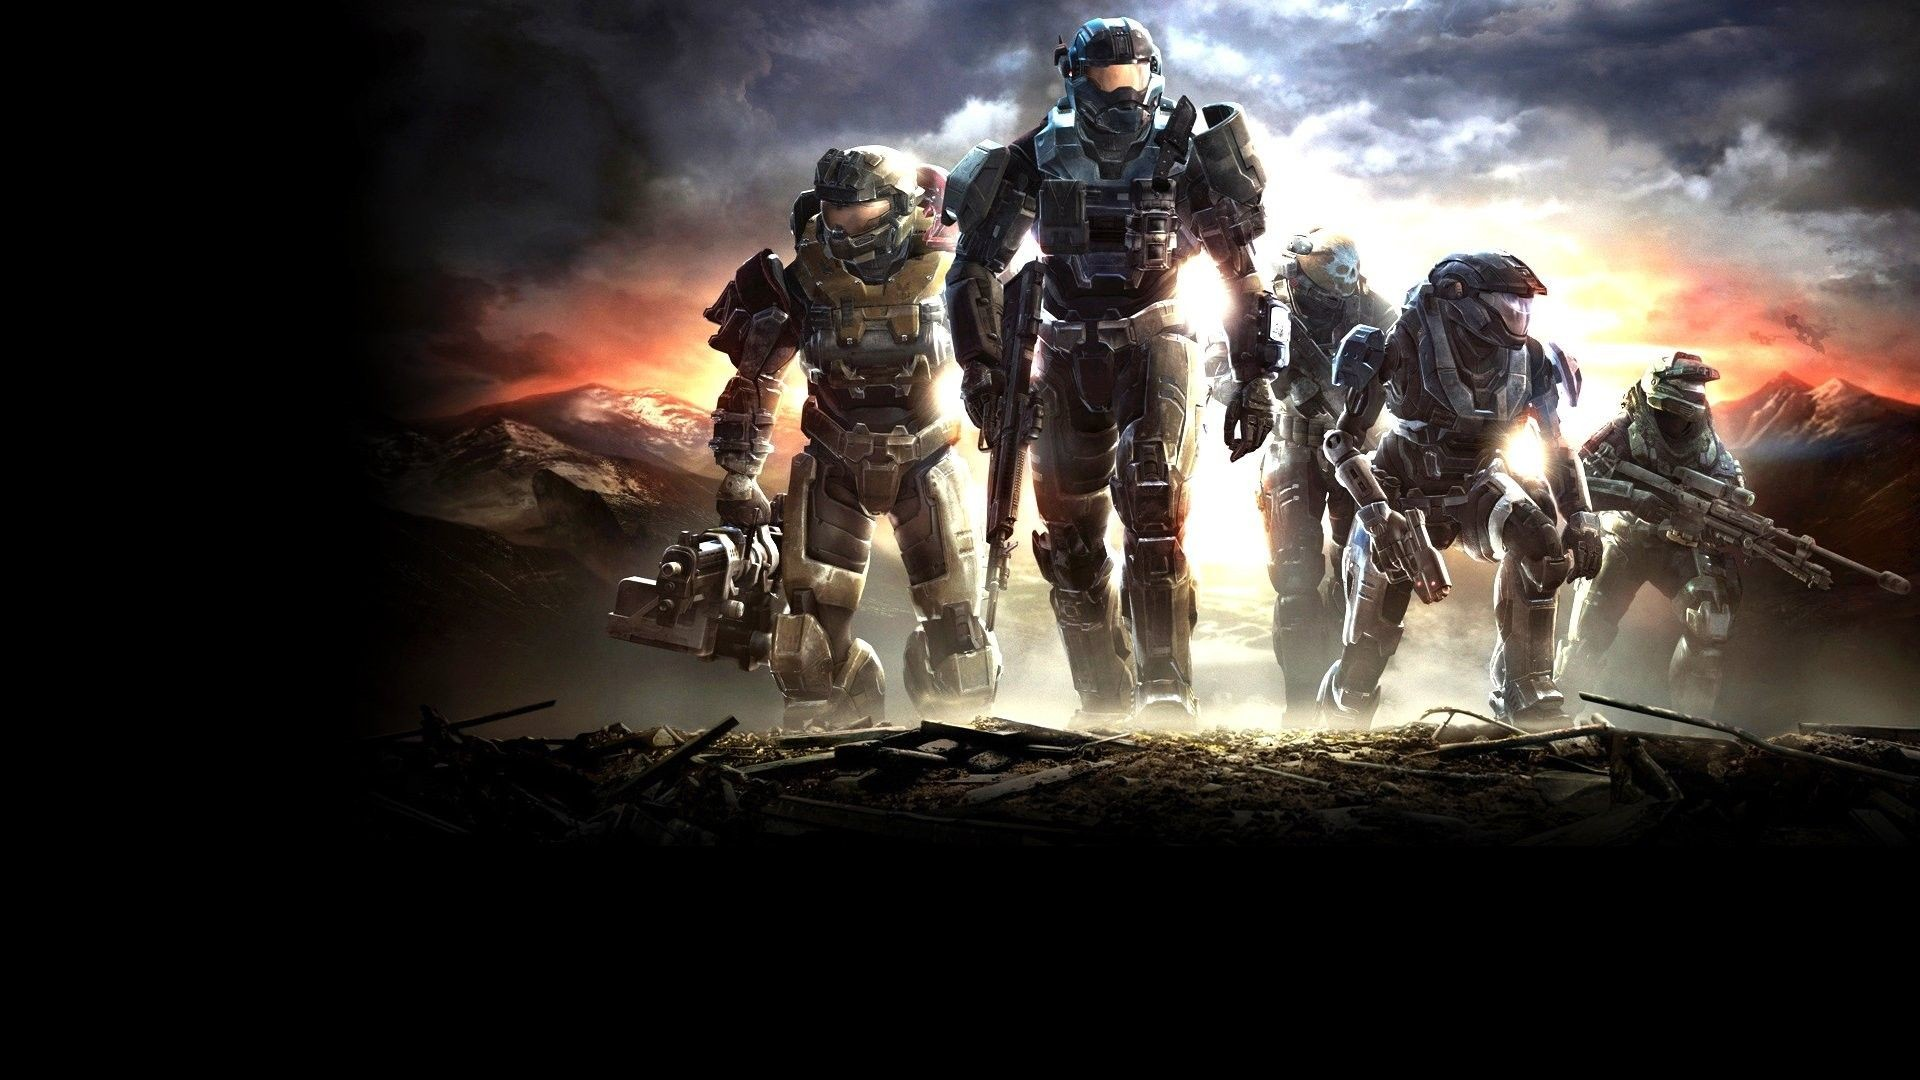 1920x1080 Halo reach wallpapers top free halo reach backgrounds jpg  Noble  team halo reach